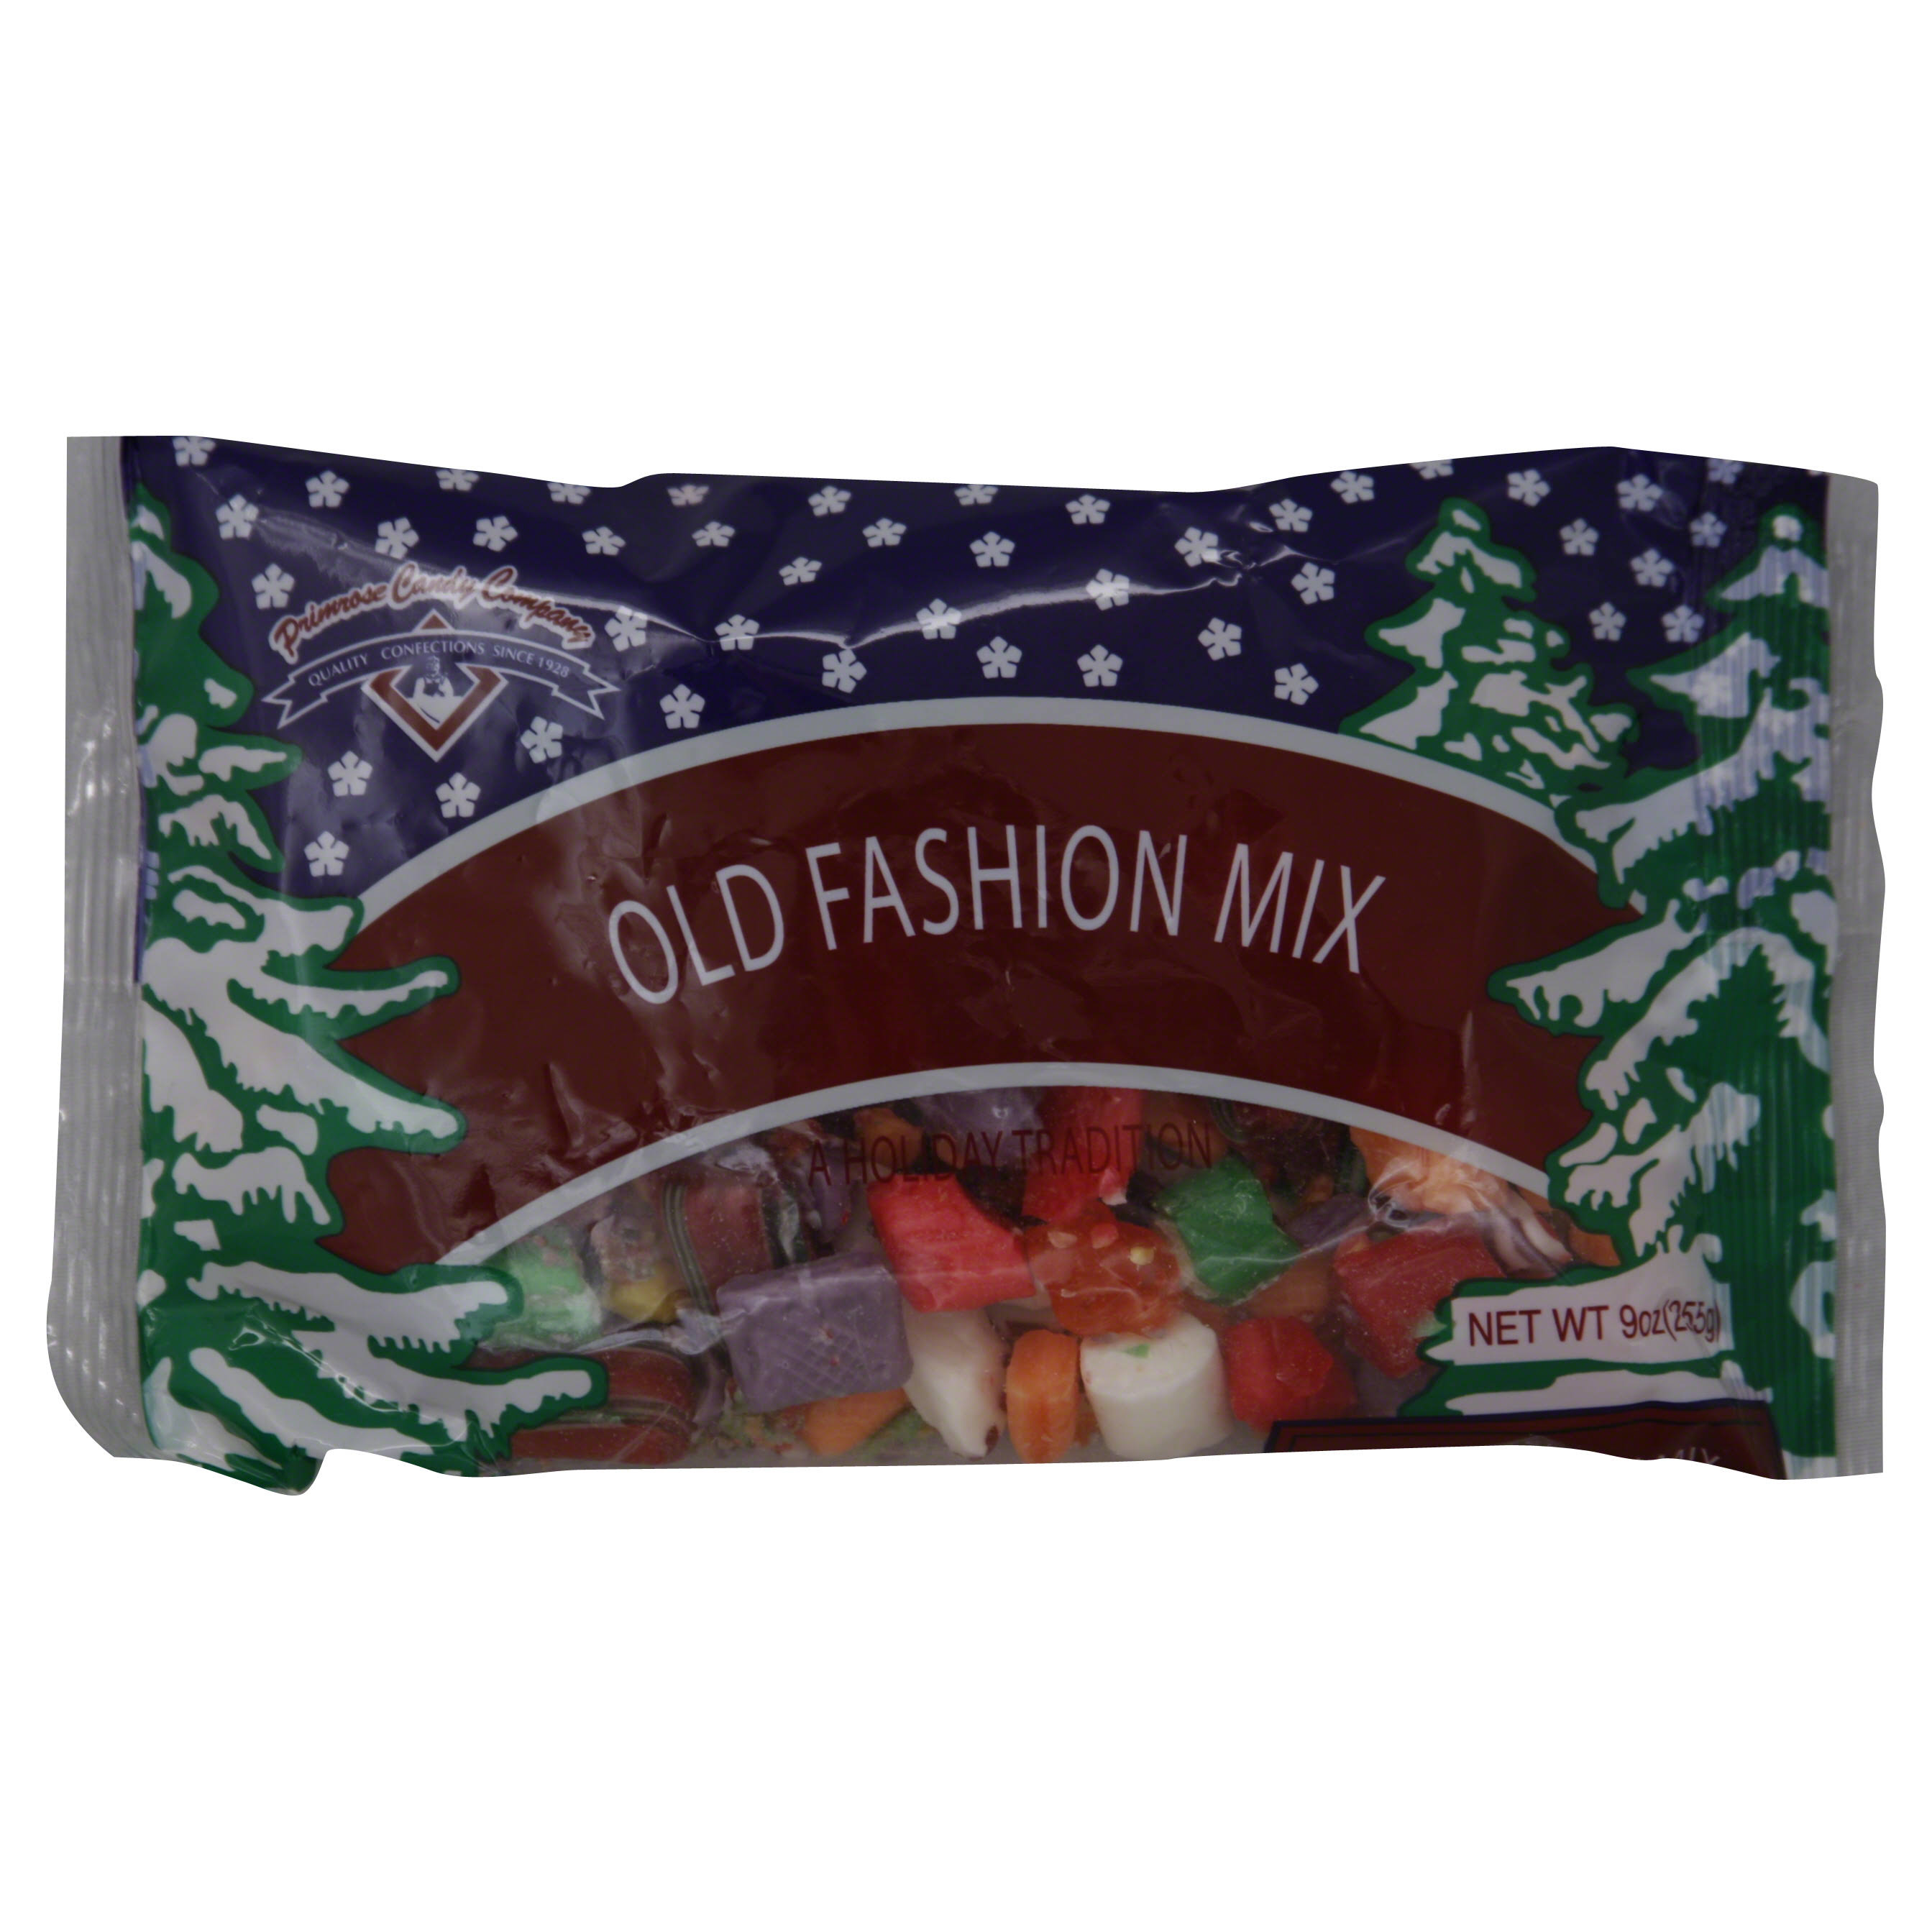 Primrose Candy Company Old Fashion Mix Candy - 9oz